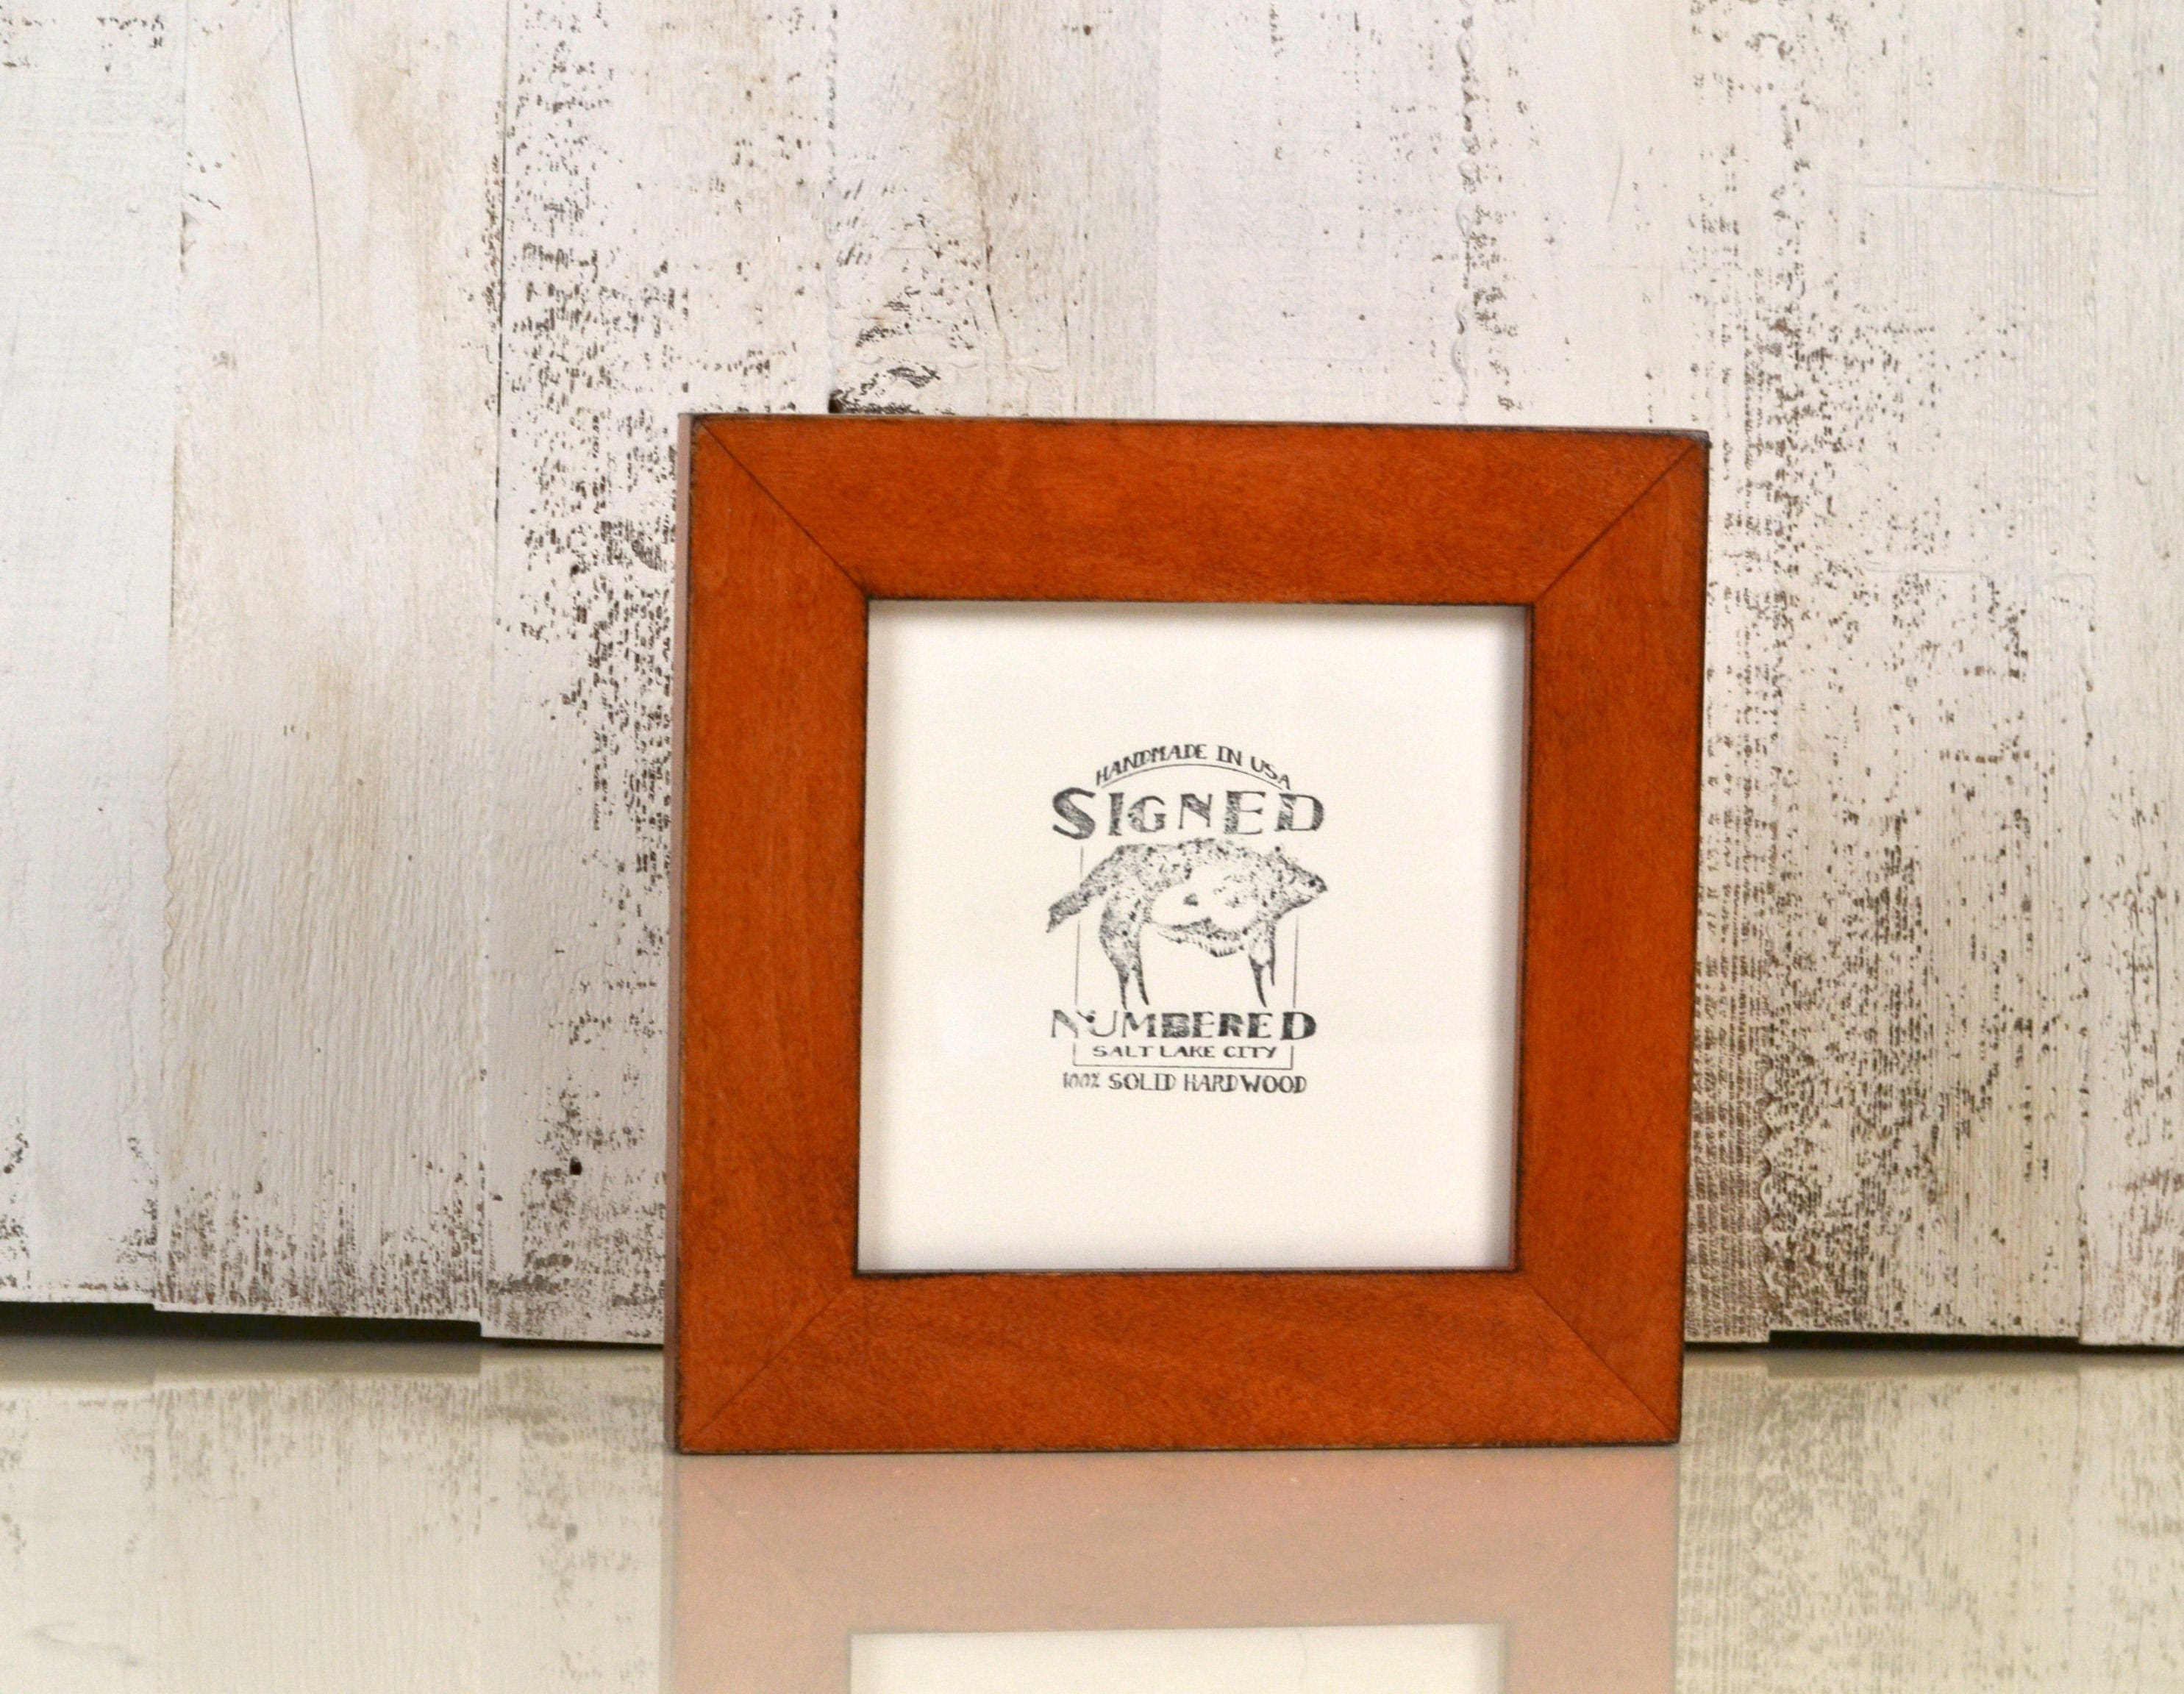 6x6 Square Frame In 15 Inch Standard Style With Vintage Wood Tone